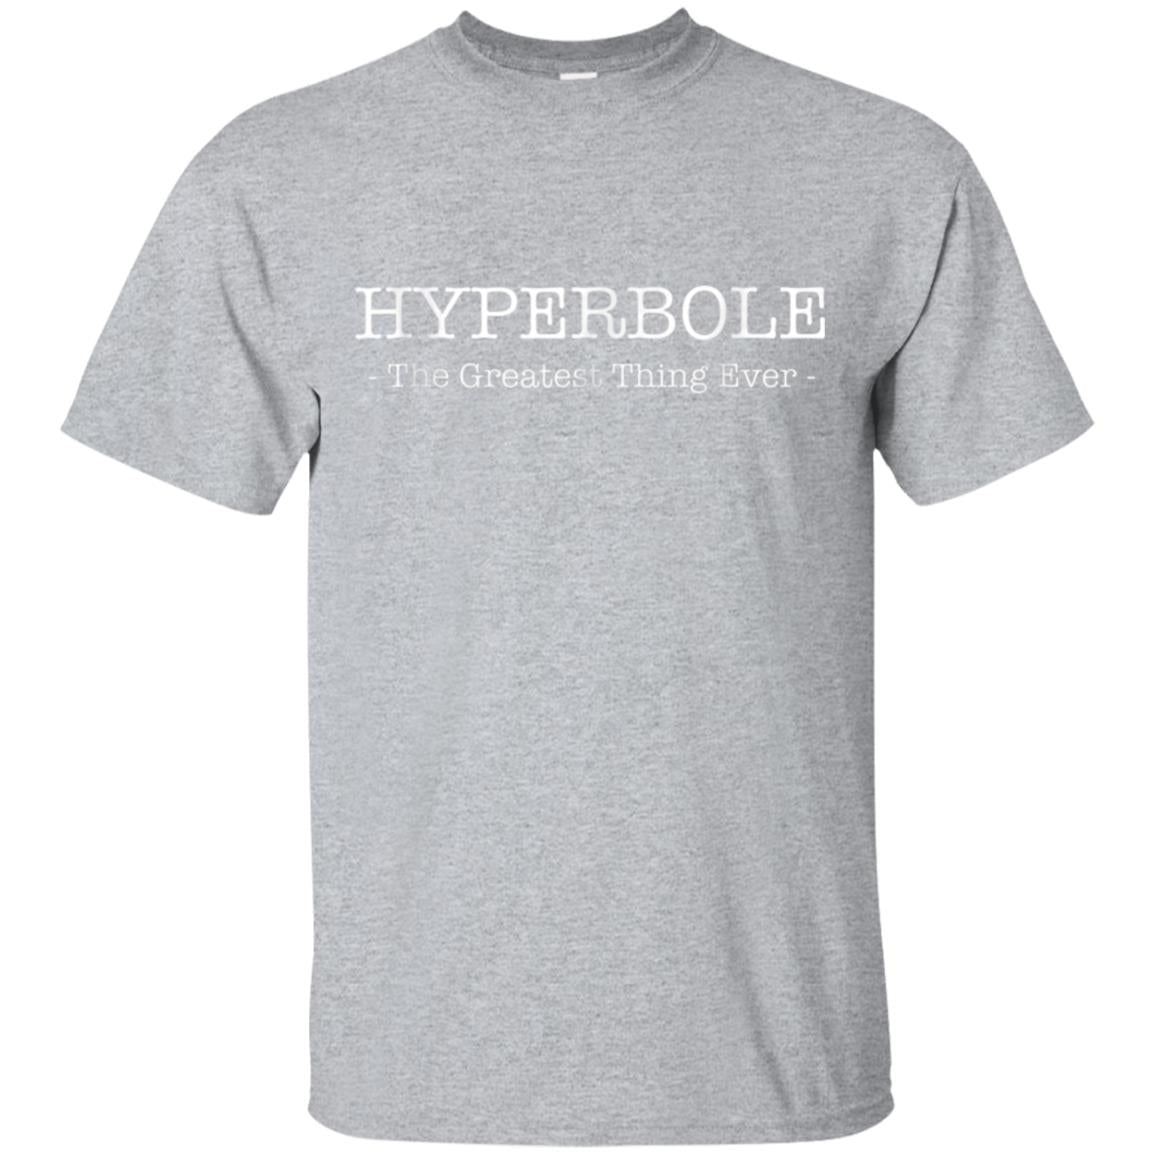 Funny Literary T Shirts - Hyperbole The Greatest thing Ever 99promocode